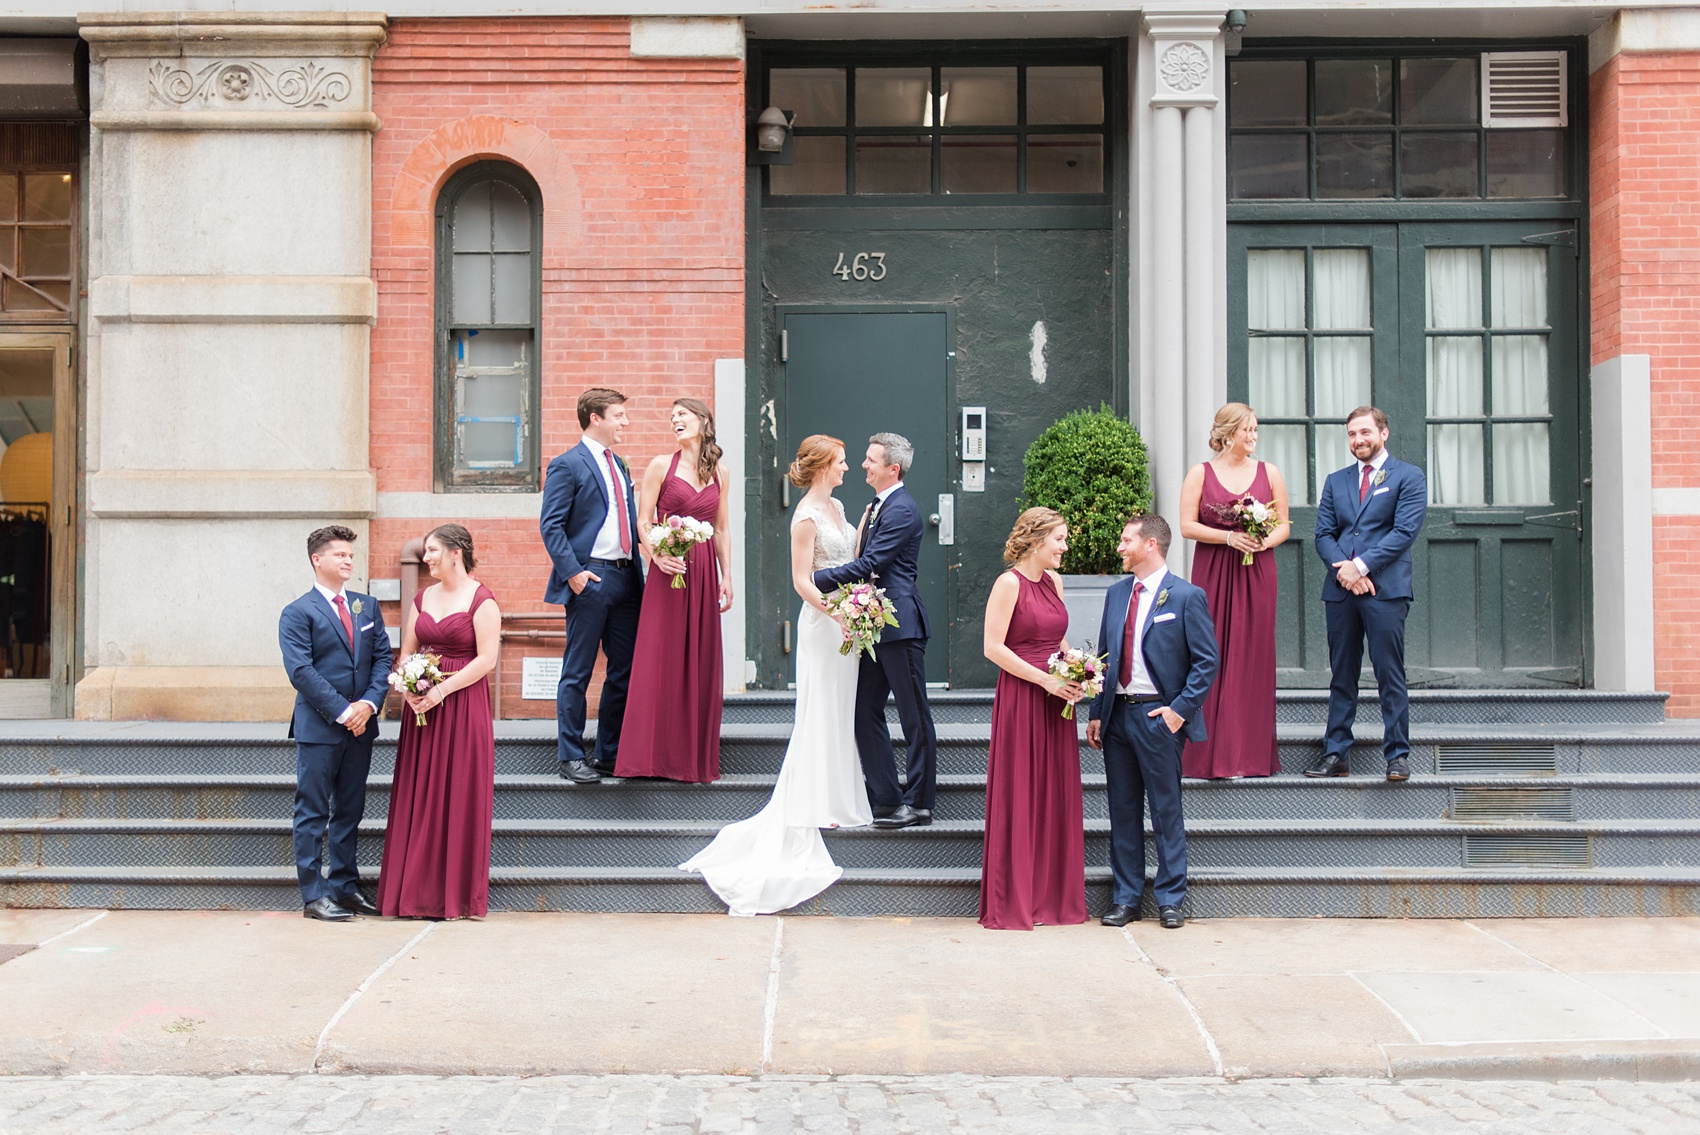 Beautiful Outdoor Wedding Ceremony At Tribeca Rooftop: Tribeca Rooftop Wedding Photos By Mikkel Paige Photography